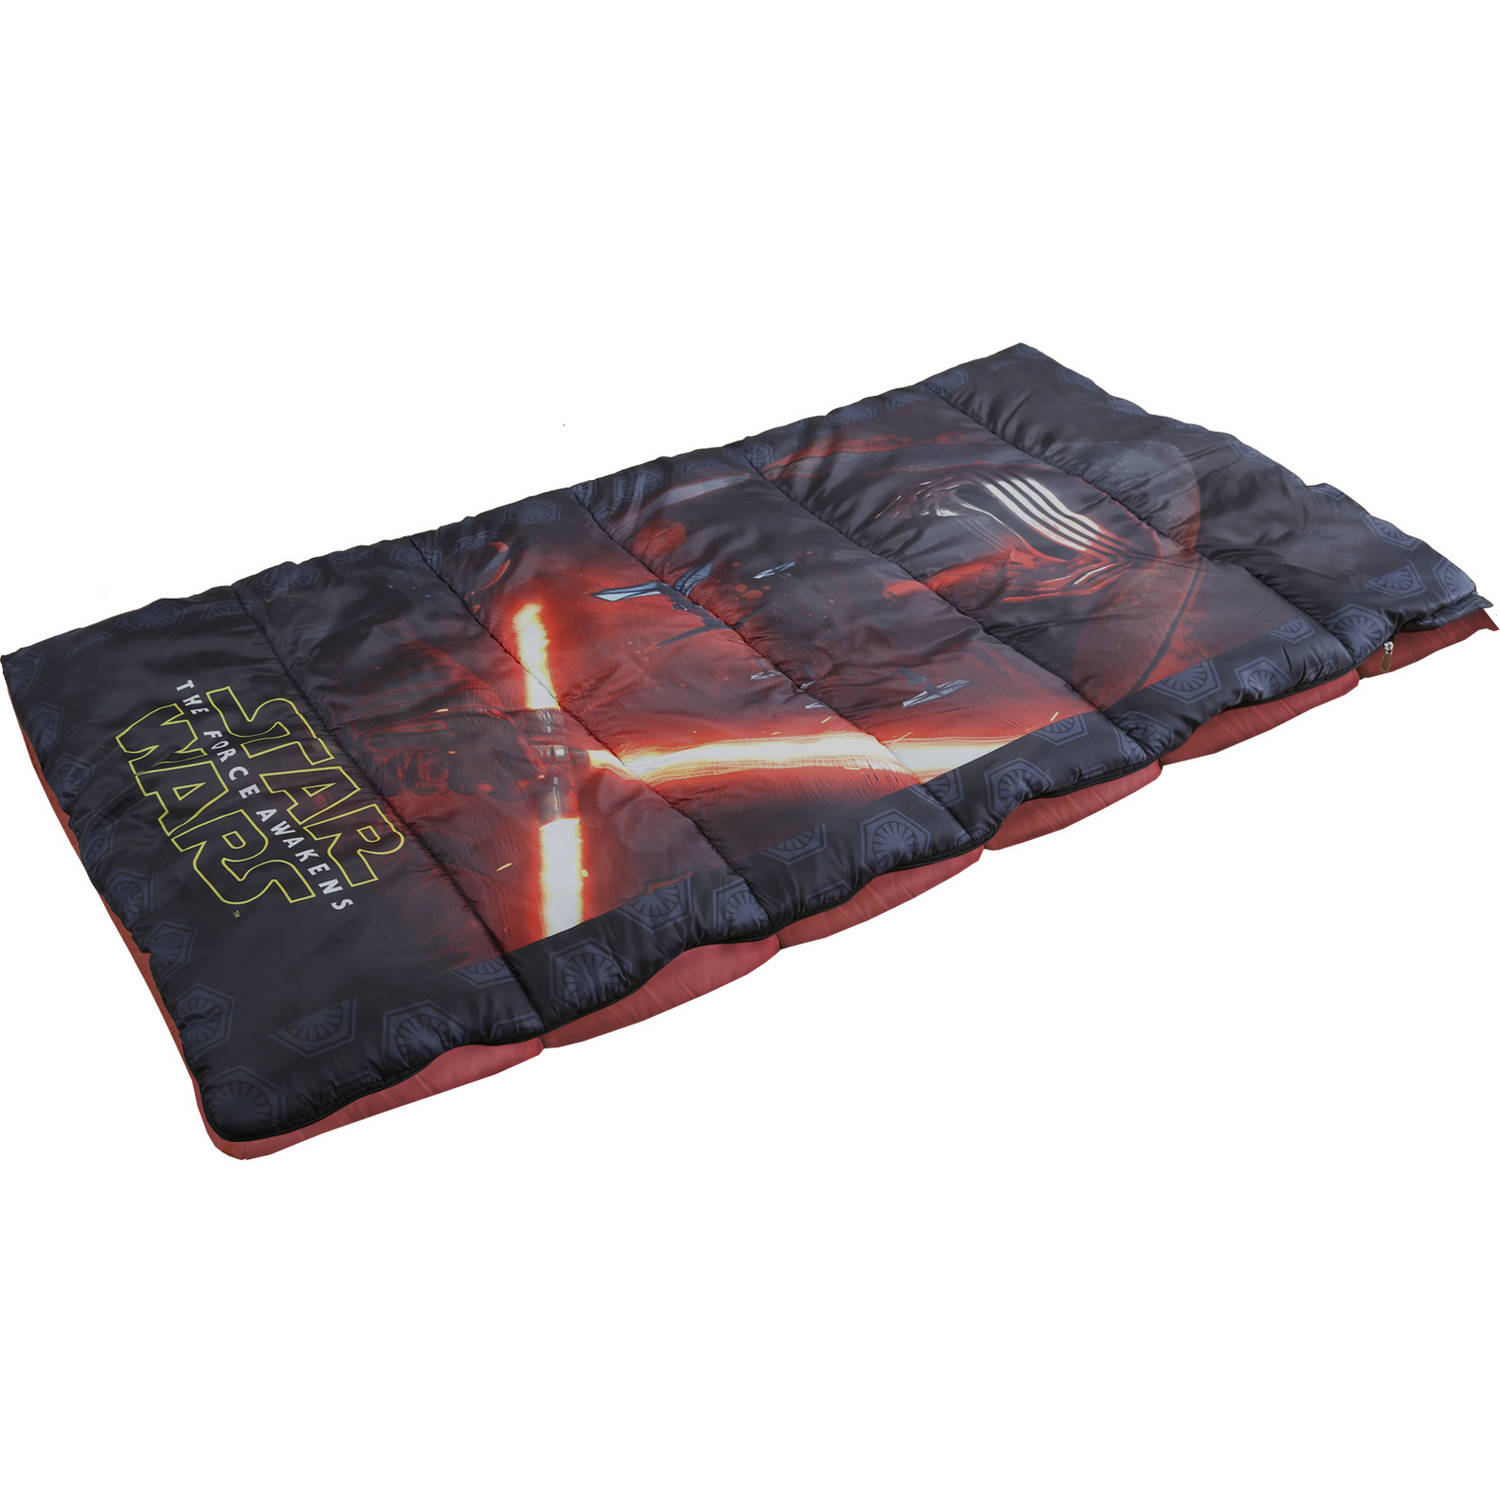 "Star Wars 28"" x 56"" Sleeping Bag with Polyester Outer Shell and Liner"